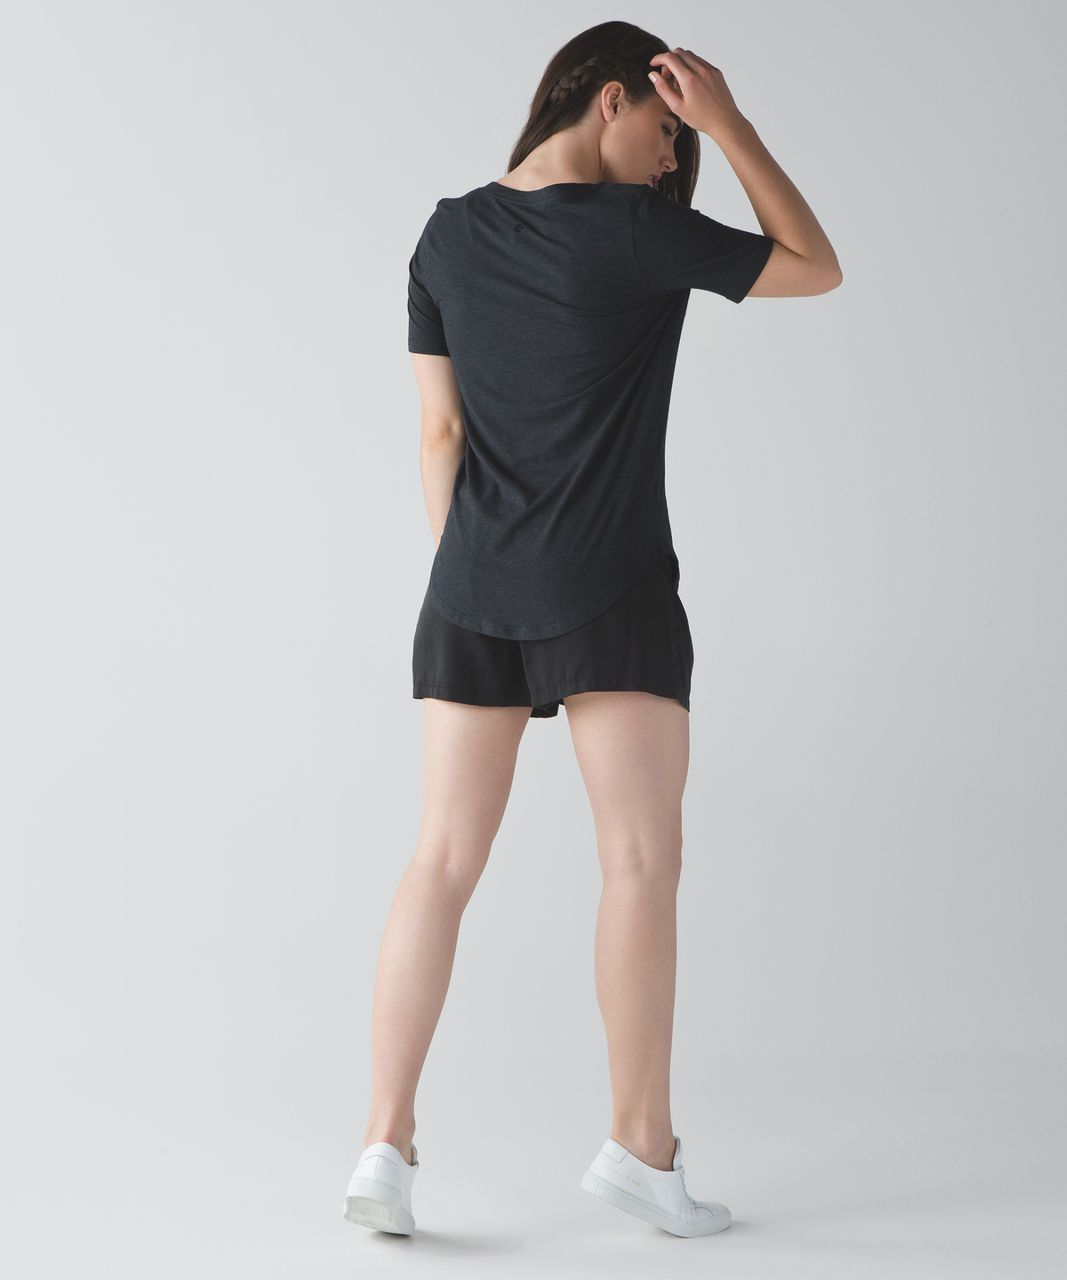 Lululemon Love Tee III - Heathered Black